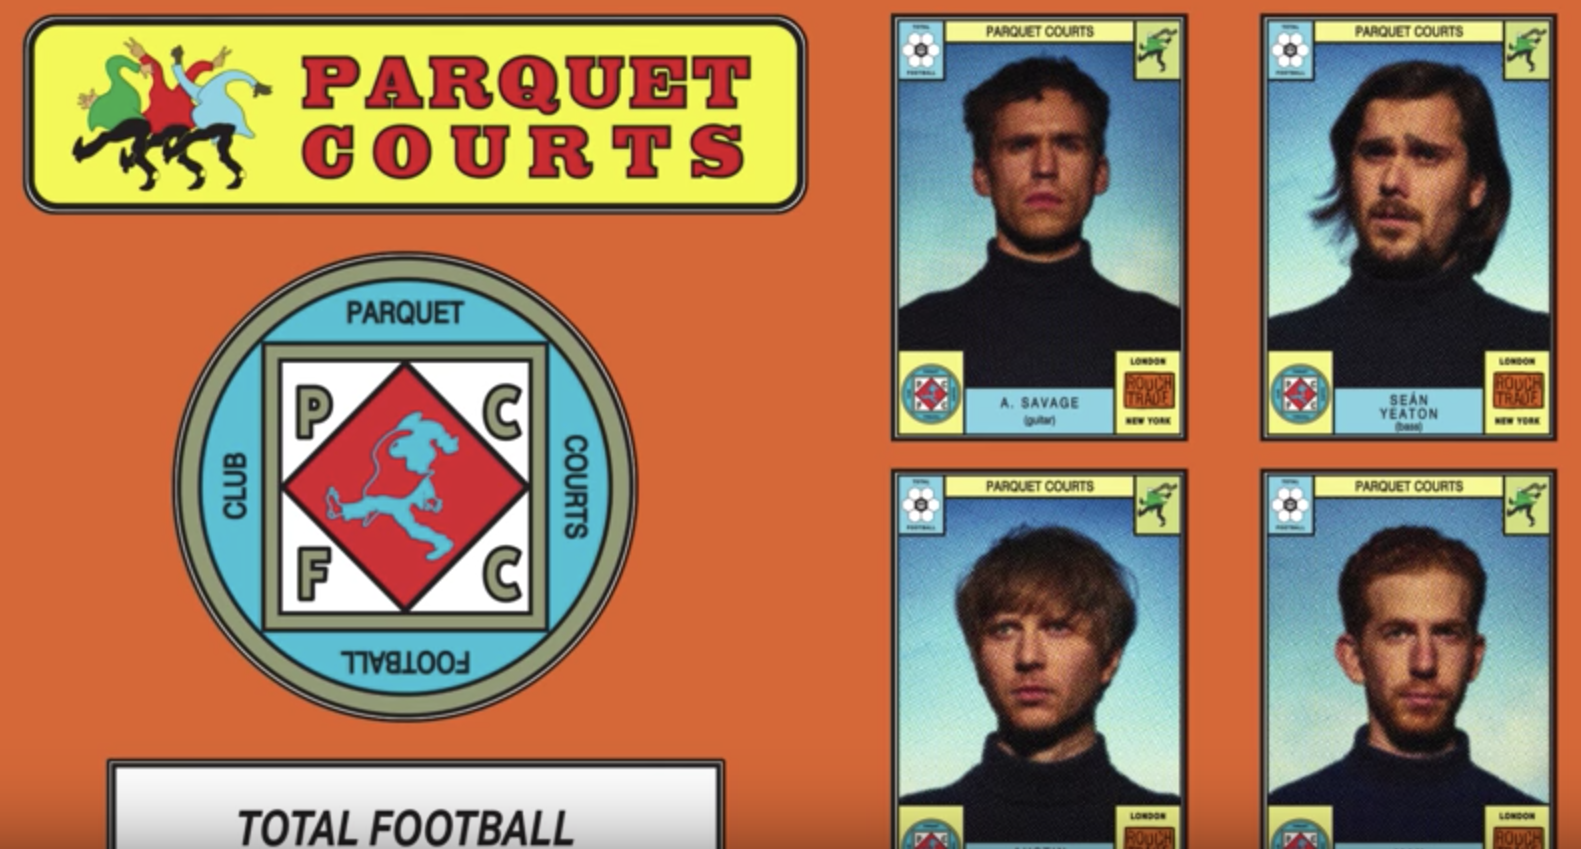 parquet-courts-total-football-lyric-video-youtube-watch